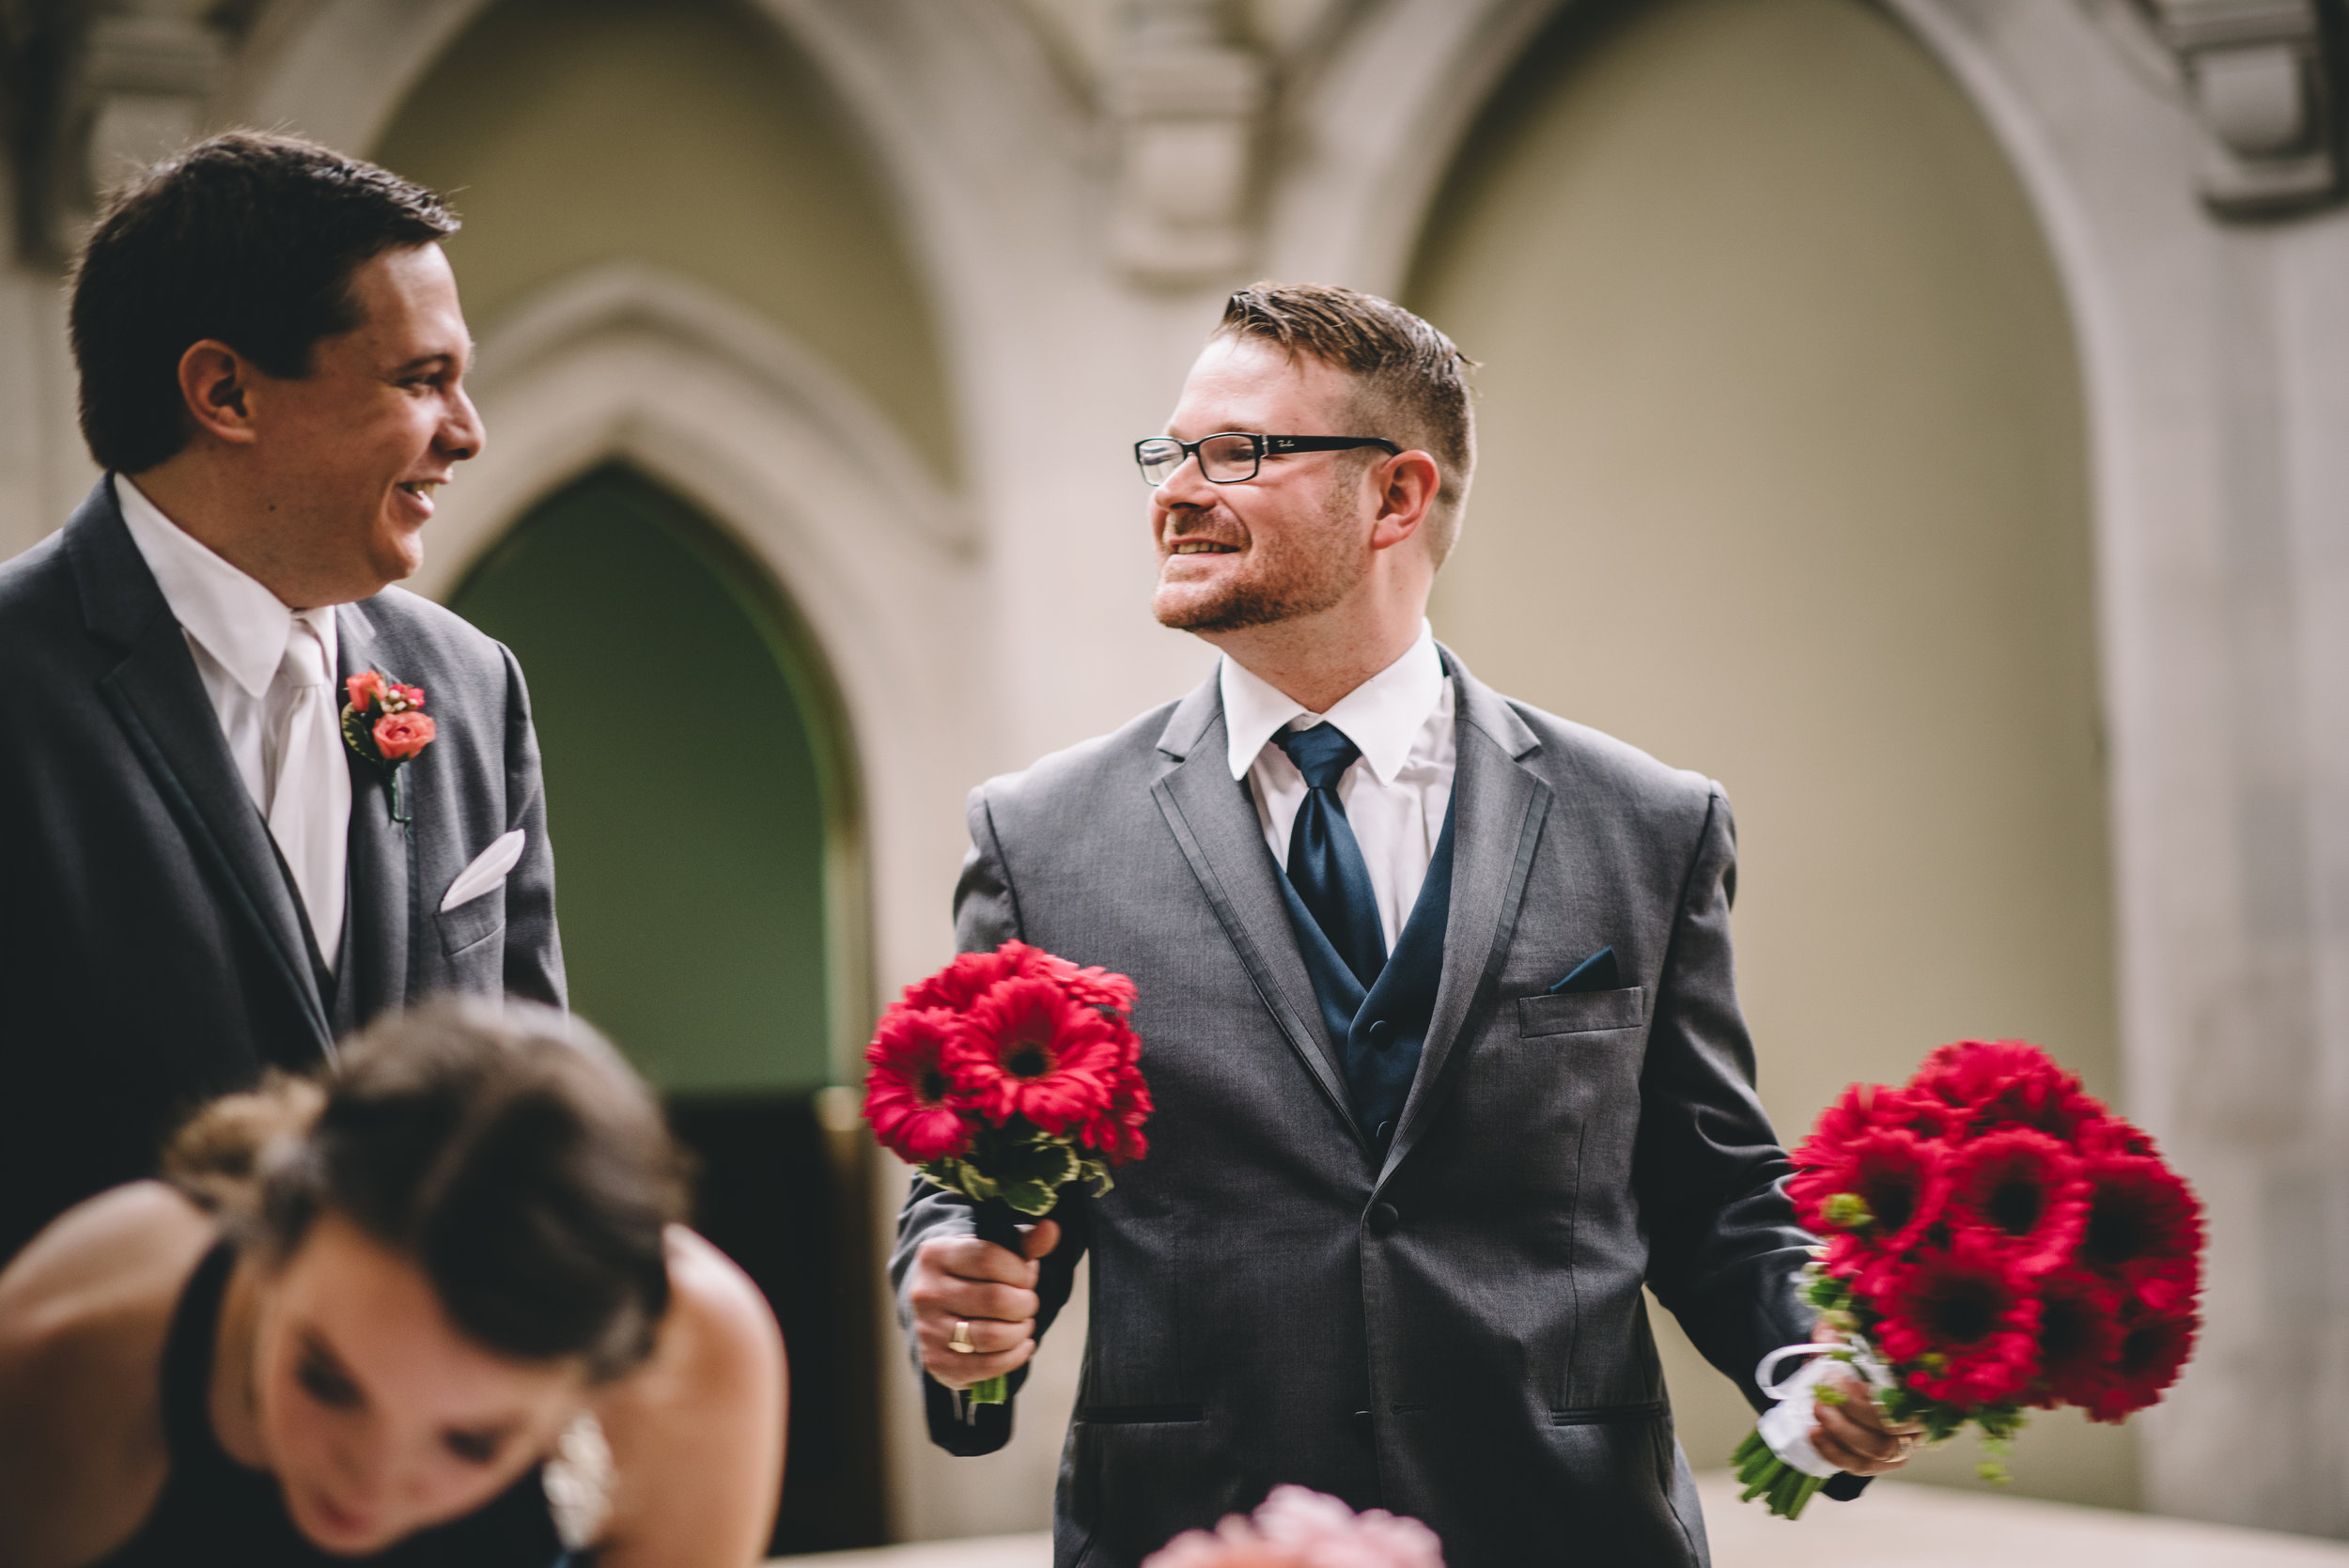 Groomsmen Mocha Tree Studios Ottawa Wedding and Engagement Photographer and Videographer Dark Moody Intimate Authentic Modern Romantic Cinematic Best Candid ALEX + BRIAN: THE MOUNT, PETERBOROUGH, ON